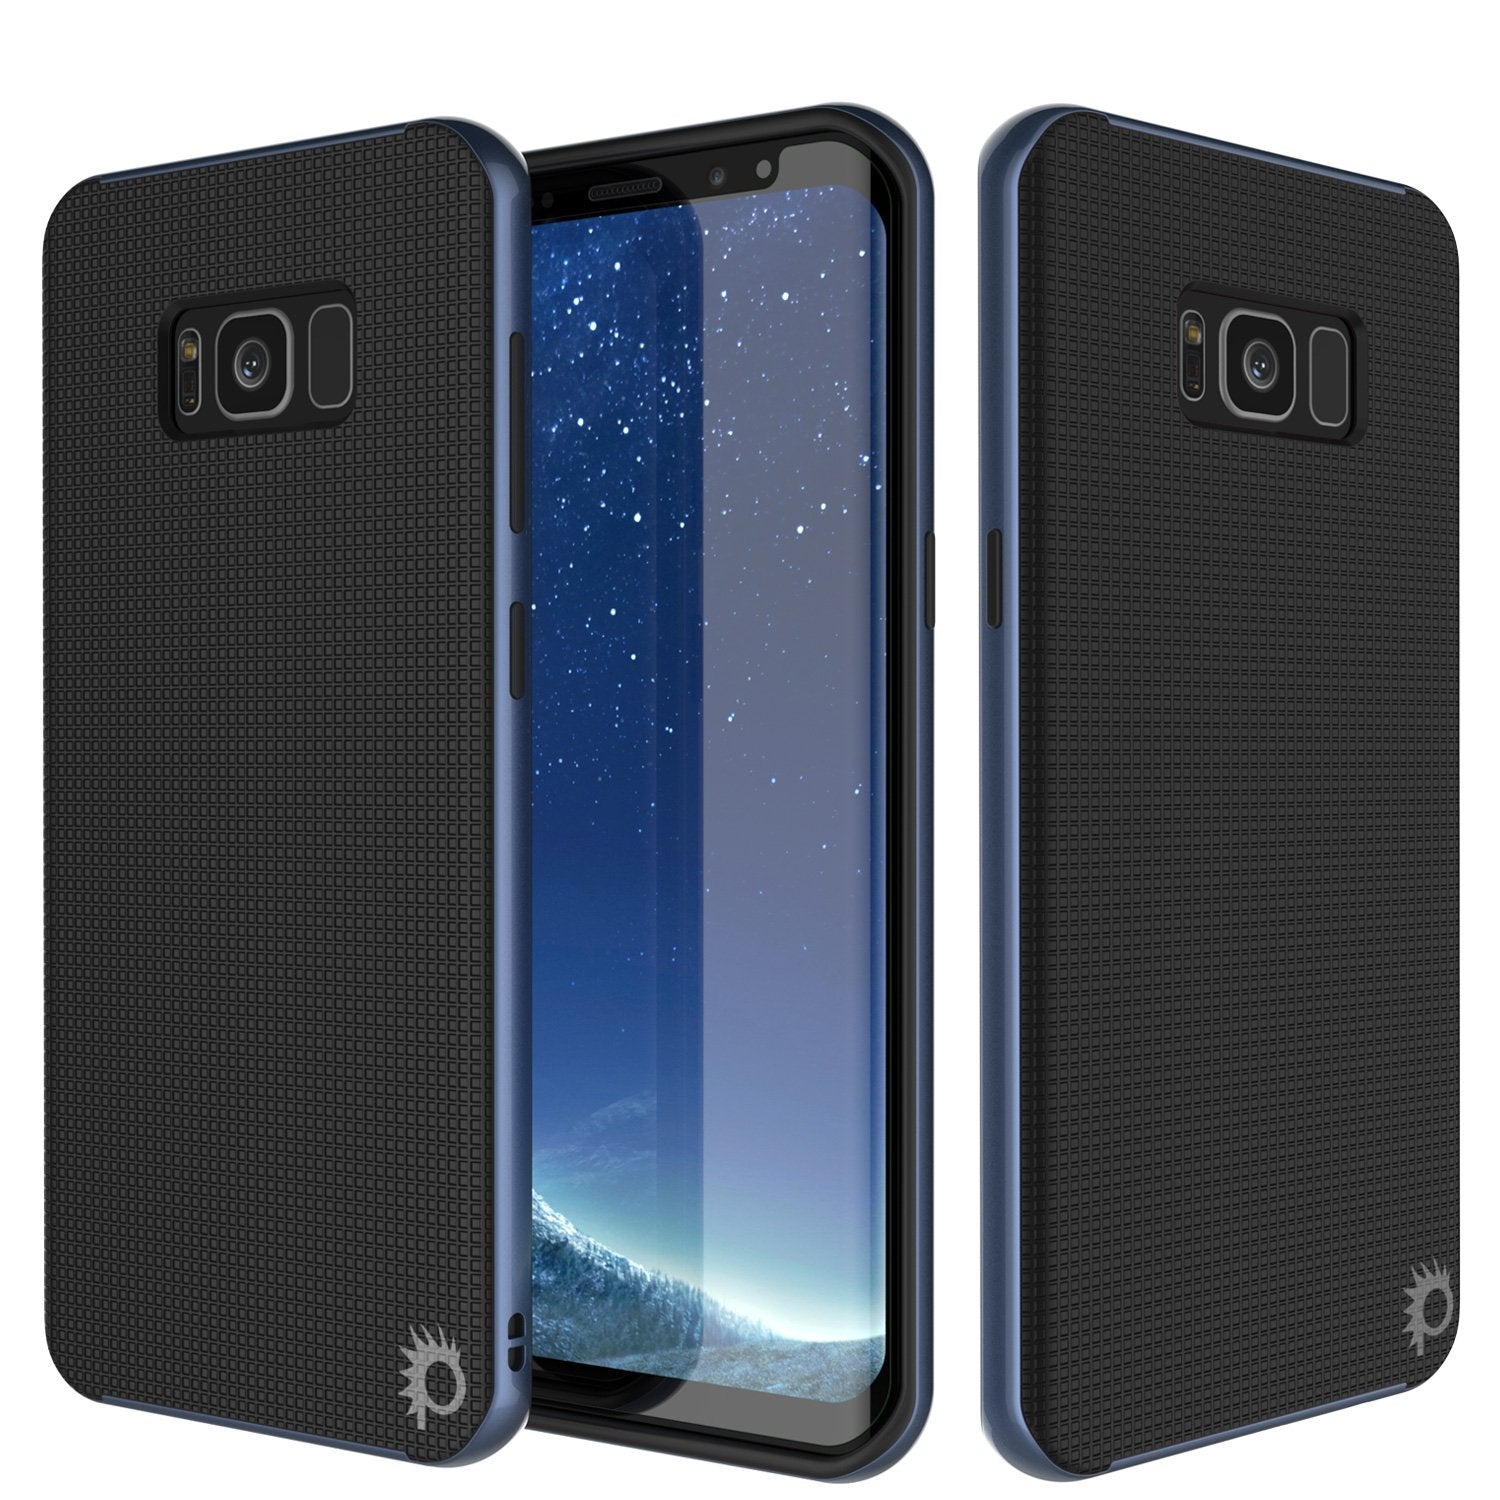 Galaxy S8 Case, PunkCase [Stealth Series] Hybrid 3-Piece Shockproof Dual Layer Cover [Non-Slip] [Soft TPU + PC Bumper] with PUNKSHIELD Screen Protector for Samsung S8 Edge [Navy Blue]